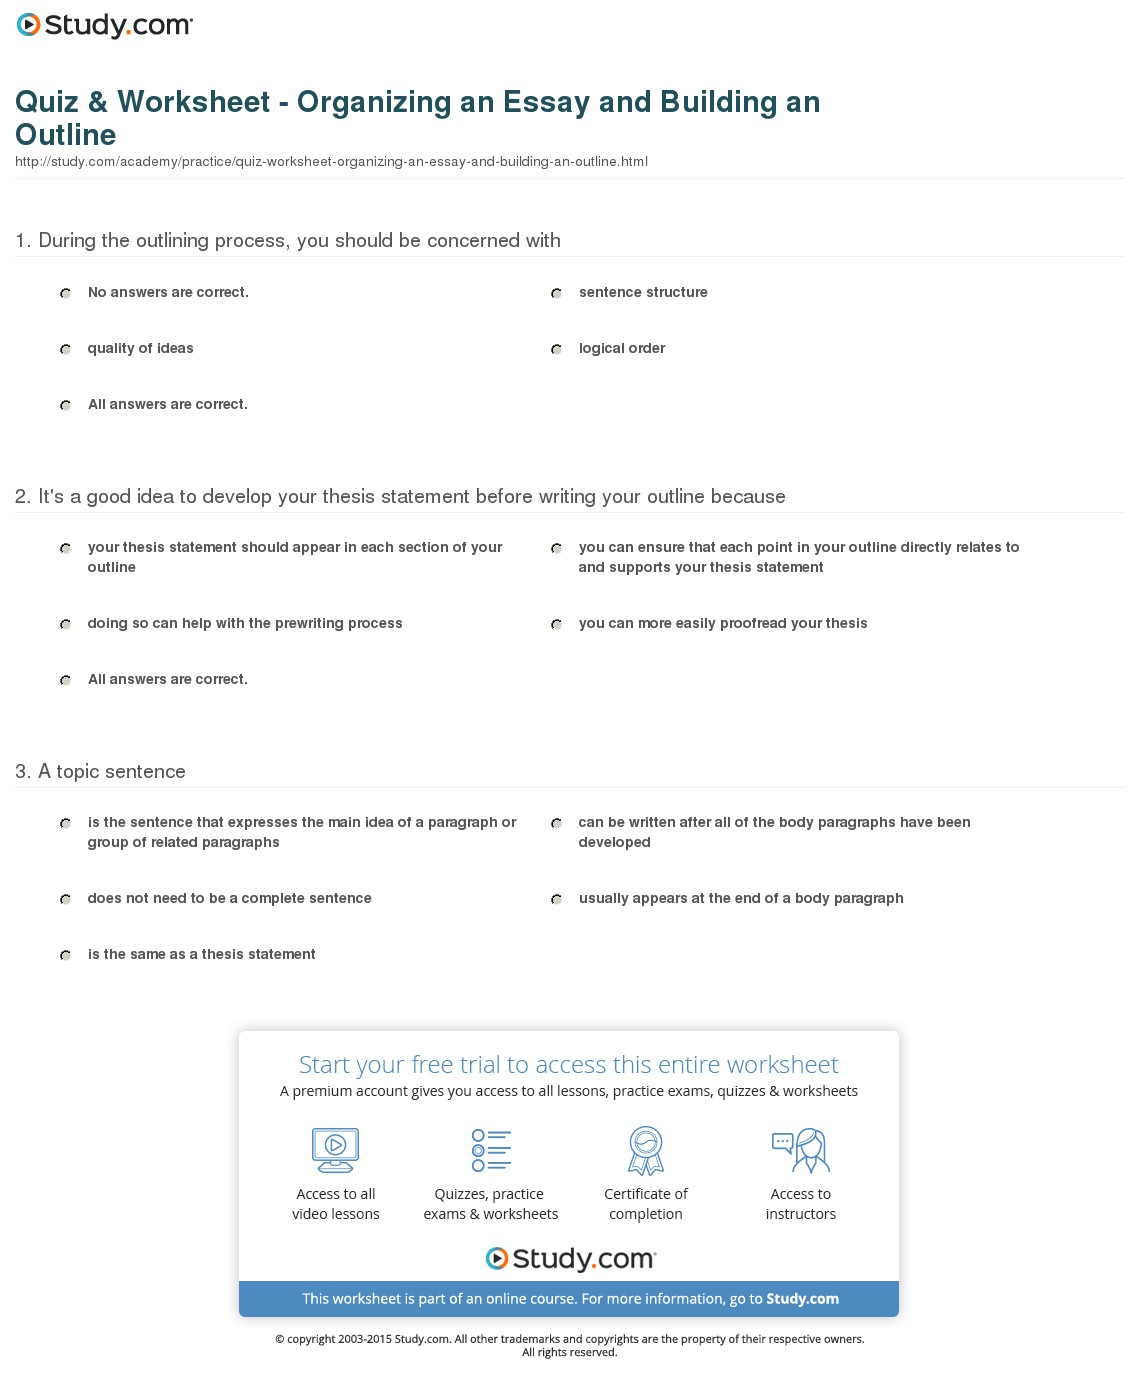 007 Organization Of Essay Example Quiz Worksheet Organizing An And Building Fascinating Expository Persuasive Methods For Argumentative Essays Full